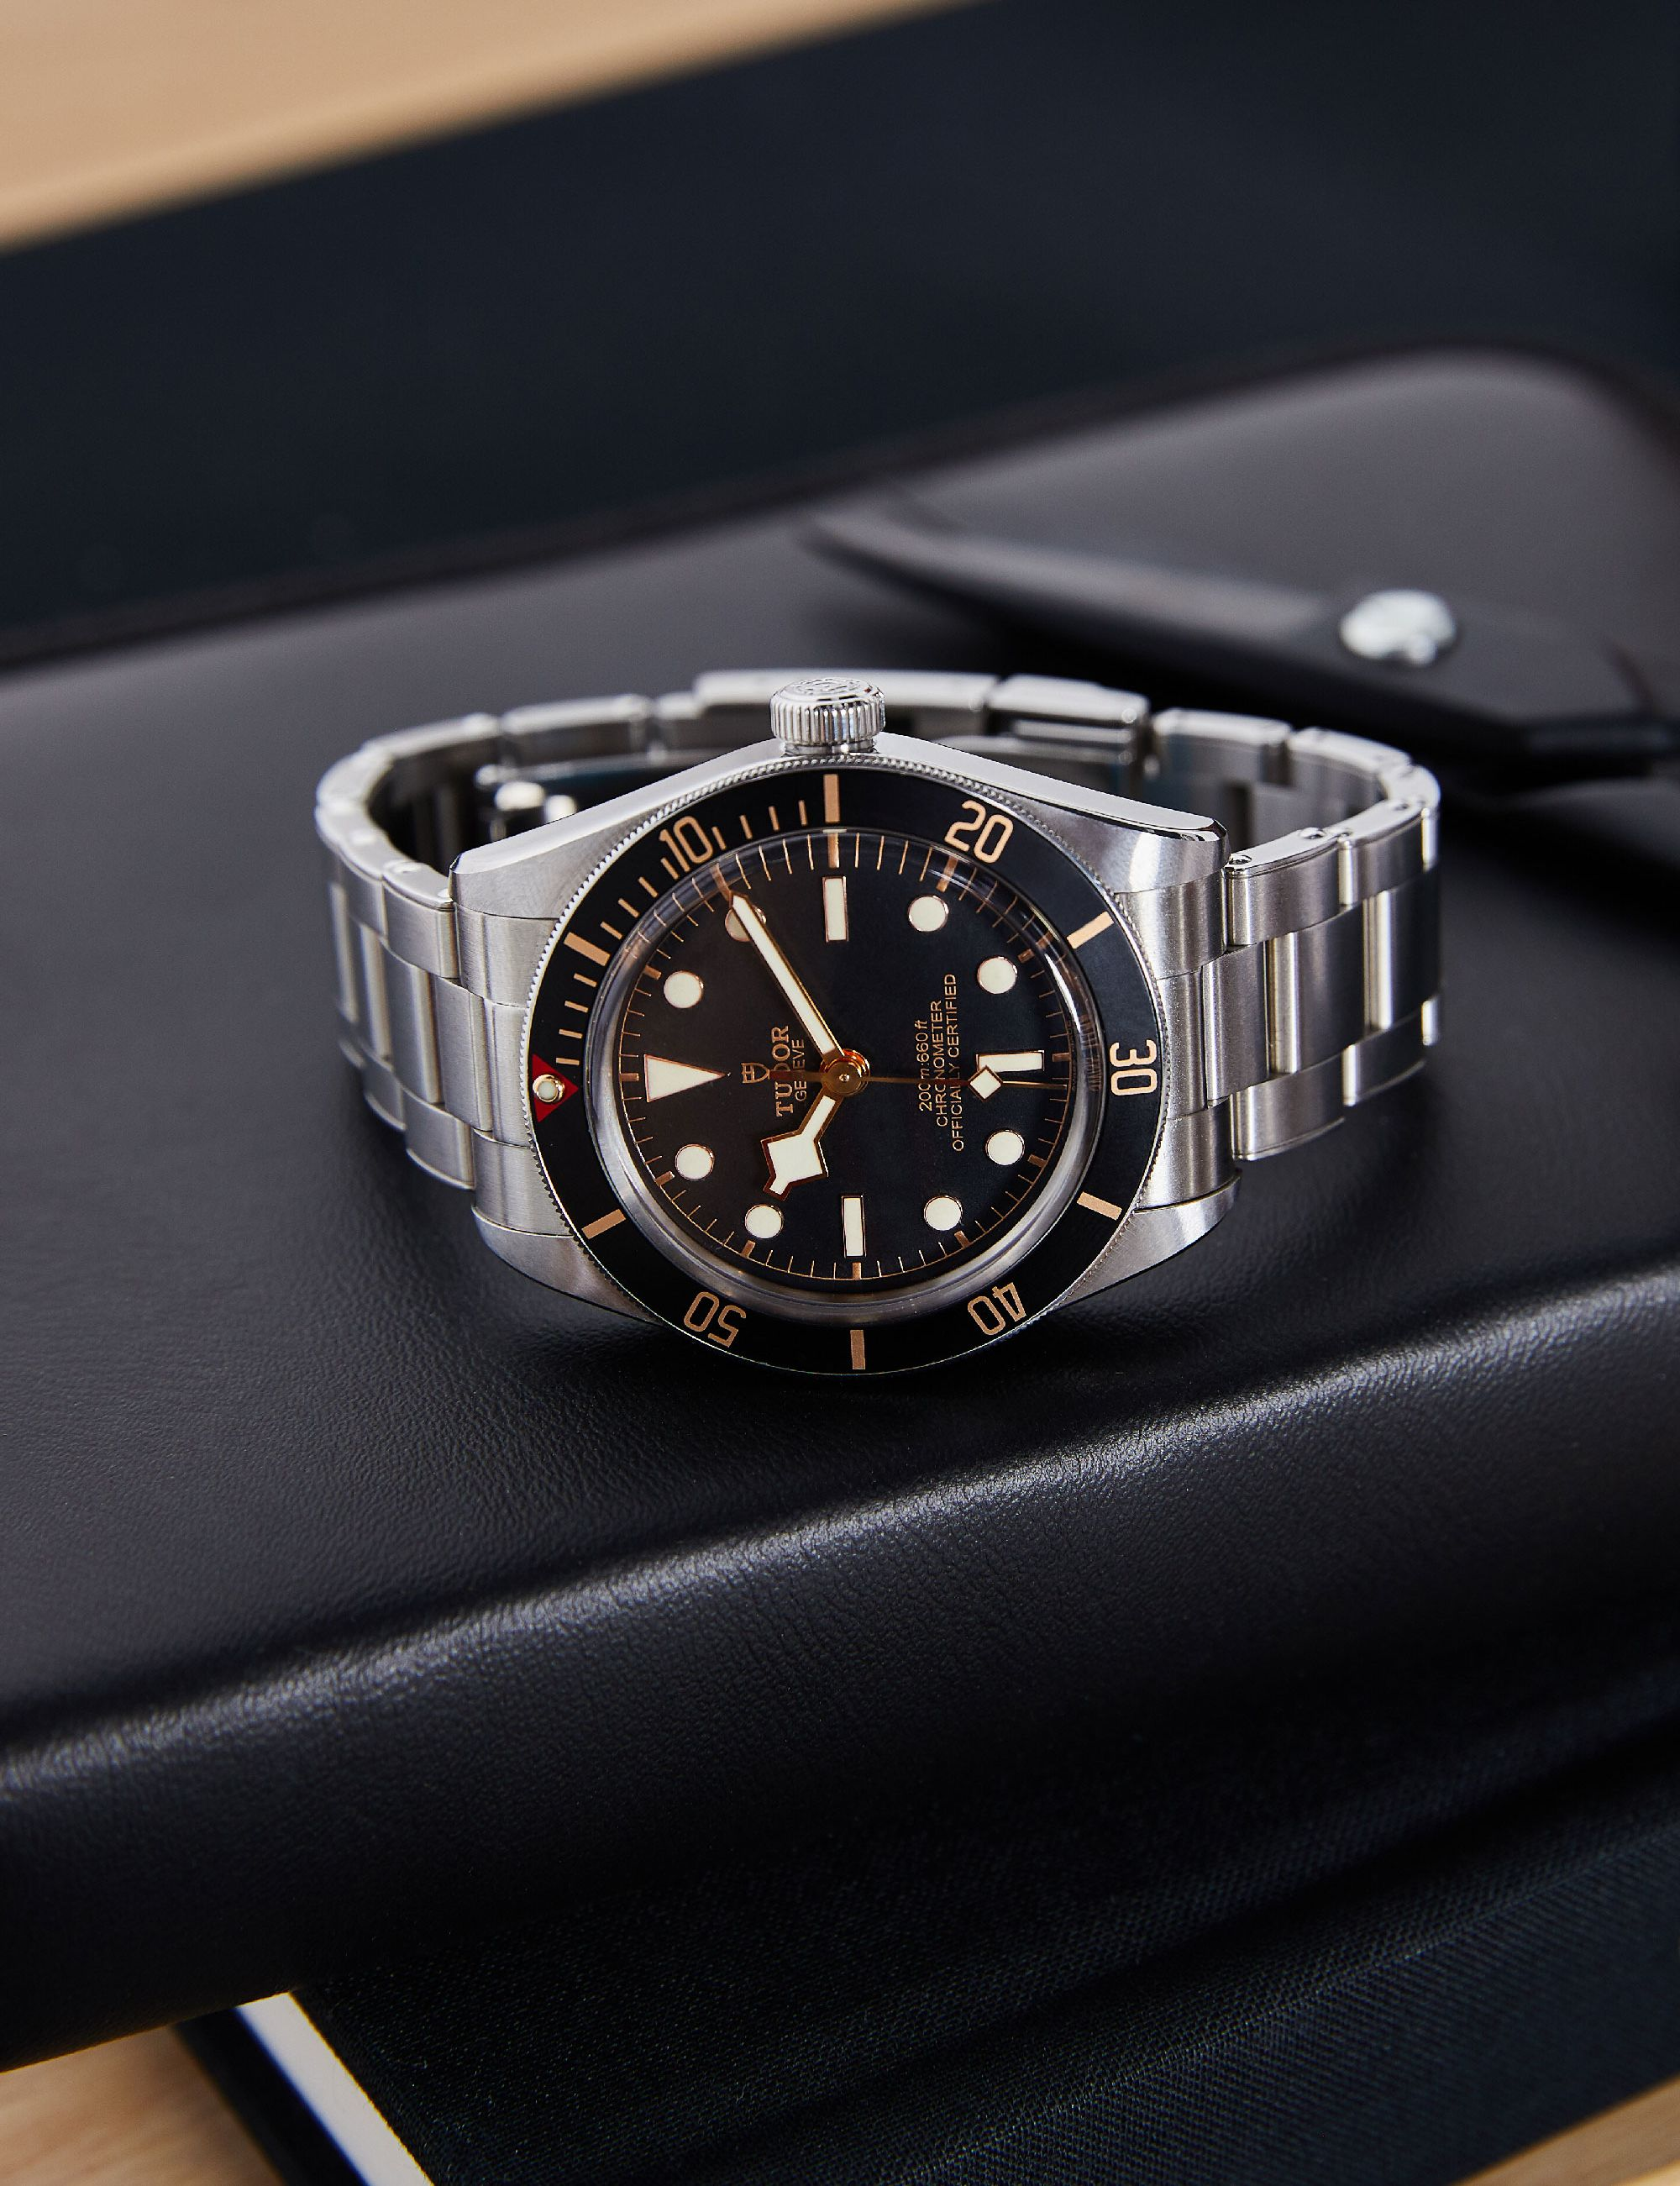 The Tudor Black Bay Fifty-Eight Is the Watch I Hope to Give to My Kid One Day